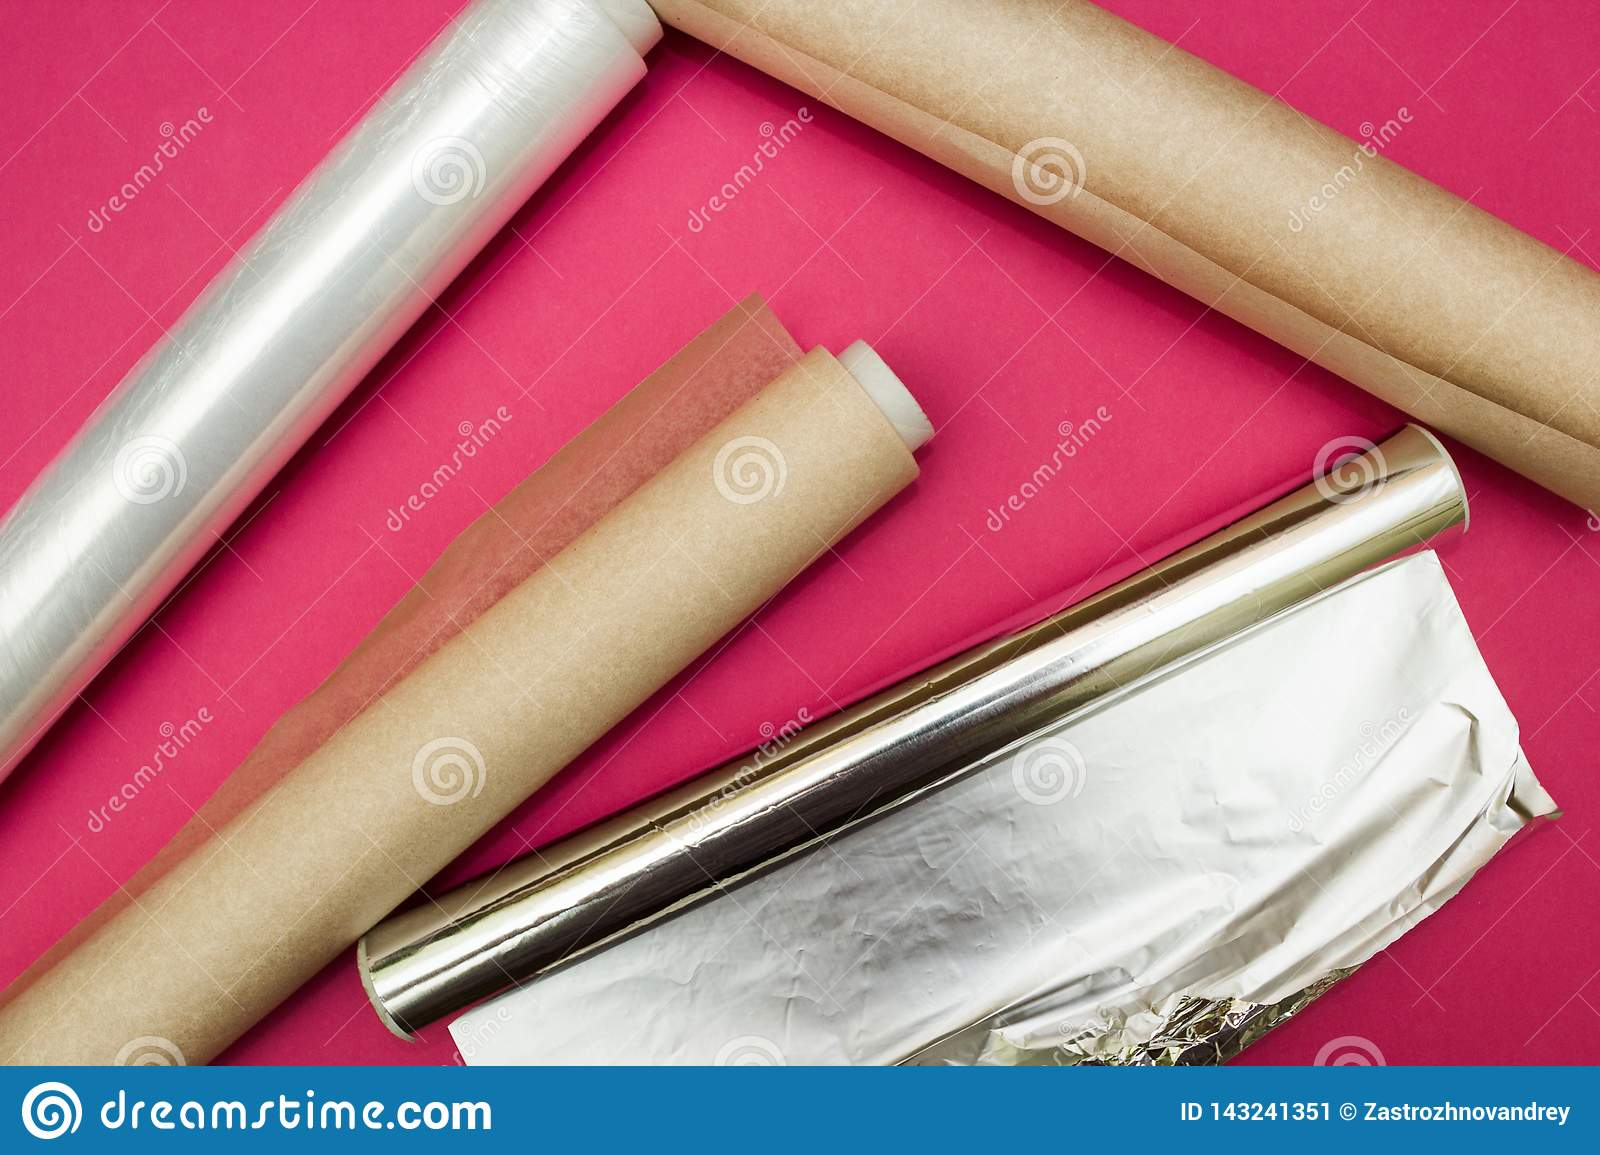 Plastic wrap, aluminum foil and roll of parchment paper on pink background